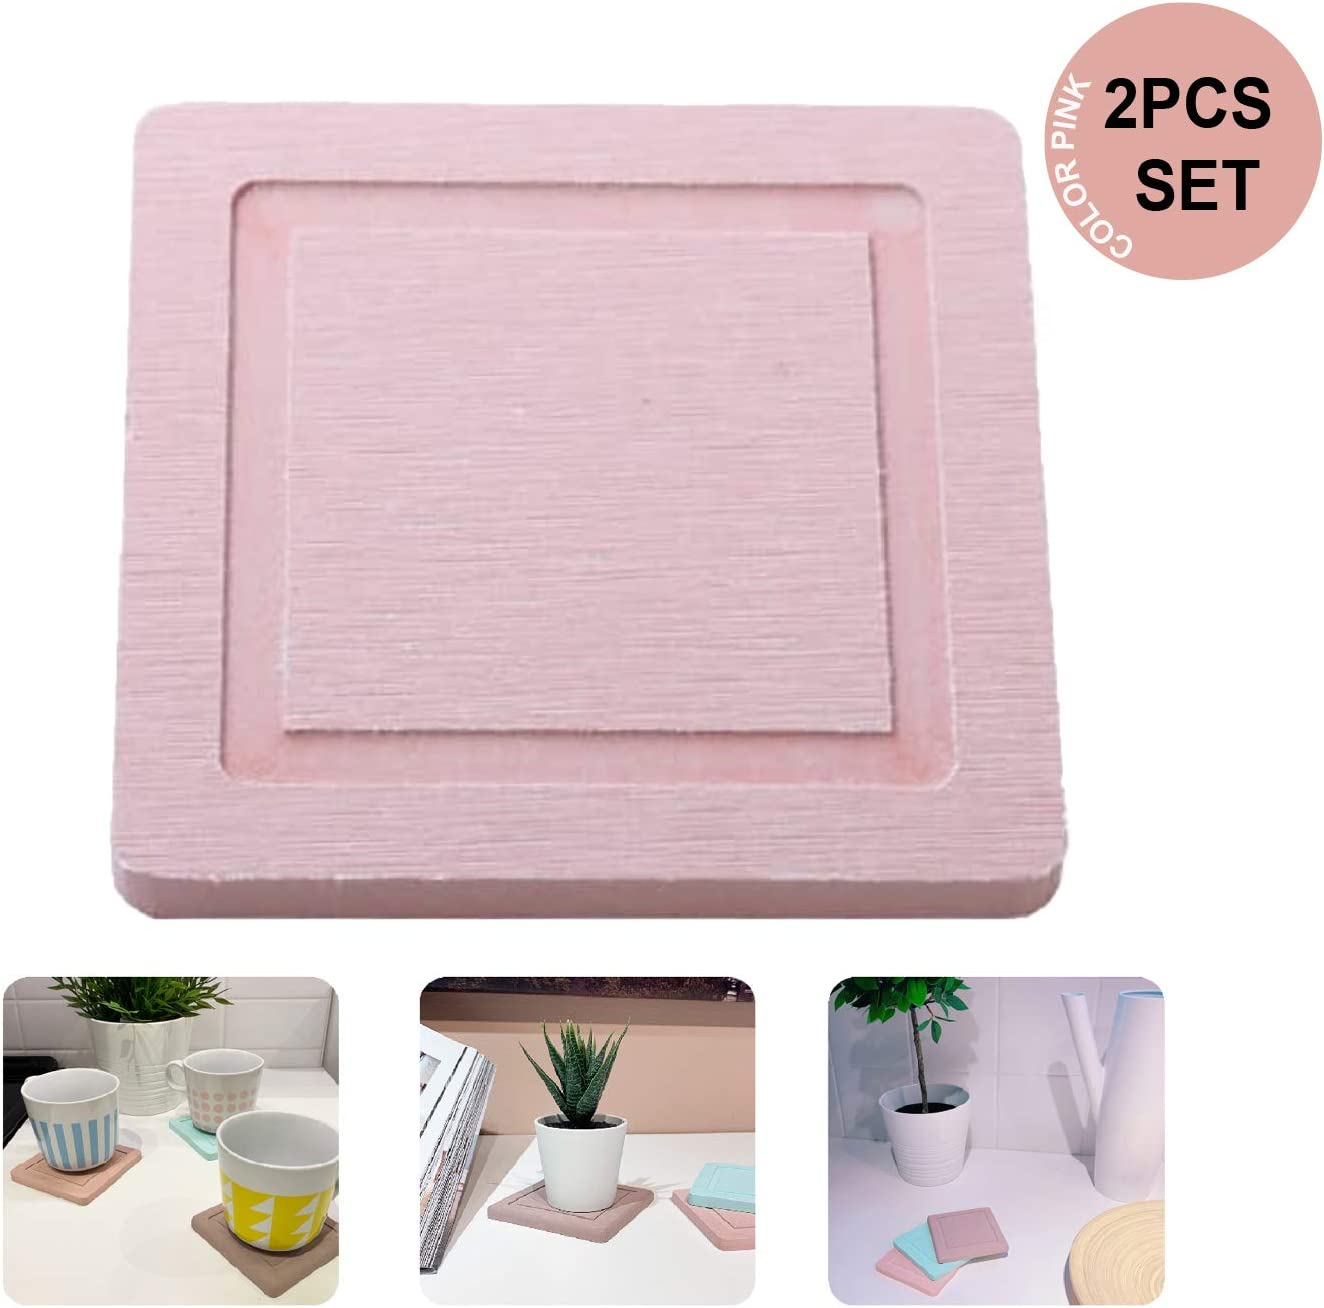 Sunny Eli Diatomite Cup Coaster Mat 2 Pack, Coasters for Drinks, Diatomite Cup Holder Mat, Coasters, Fast Water Absorbent Coasters, Self-Dry Diatomaceous Cup Holder, Small Plant Tray (Pink)